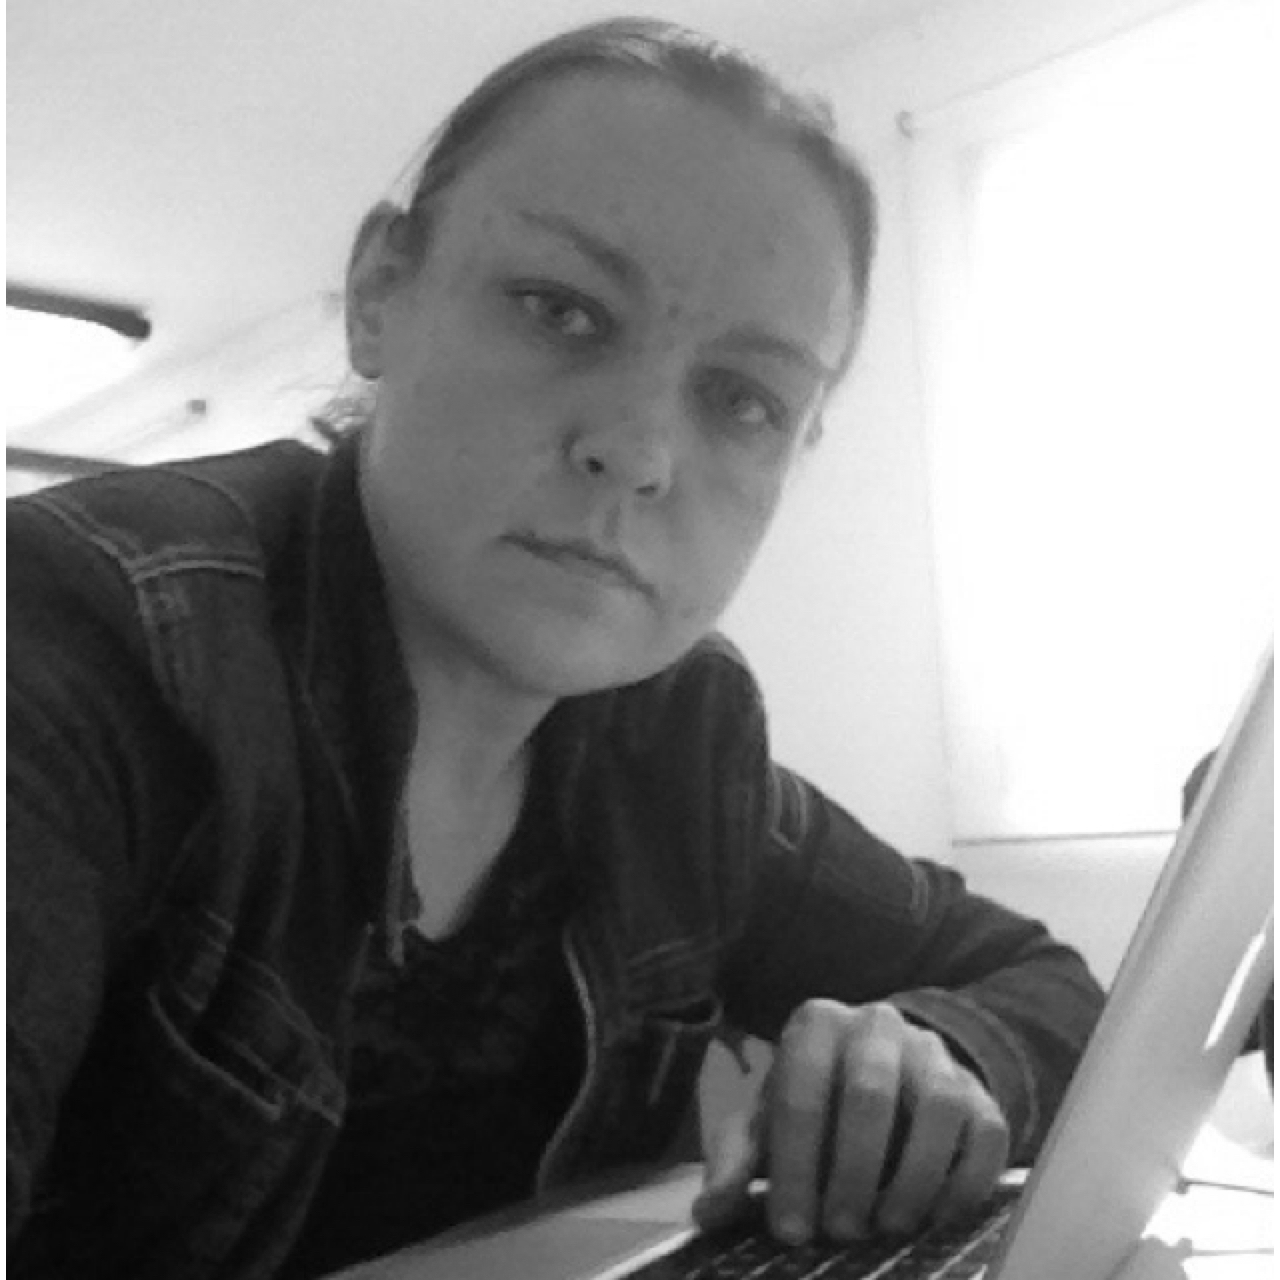 Anna   Kozynenko    Mobile Developer   Often found training in martial arts, playing soccer or trekking in the Himalayas.